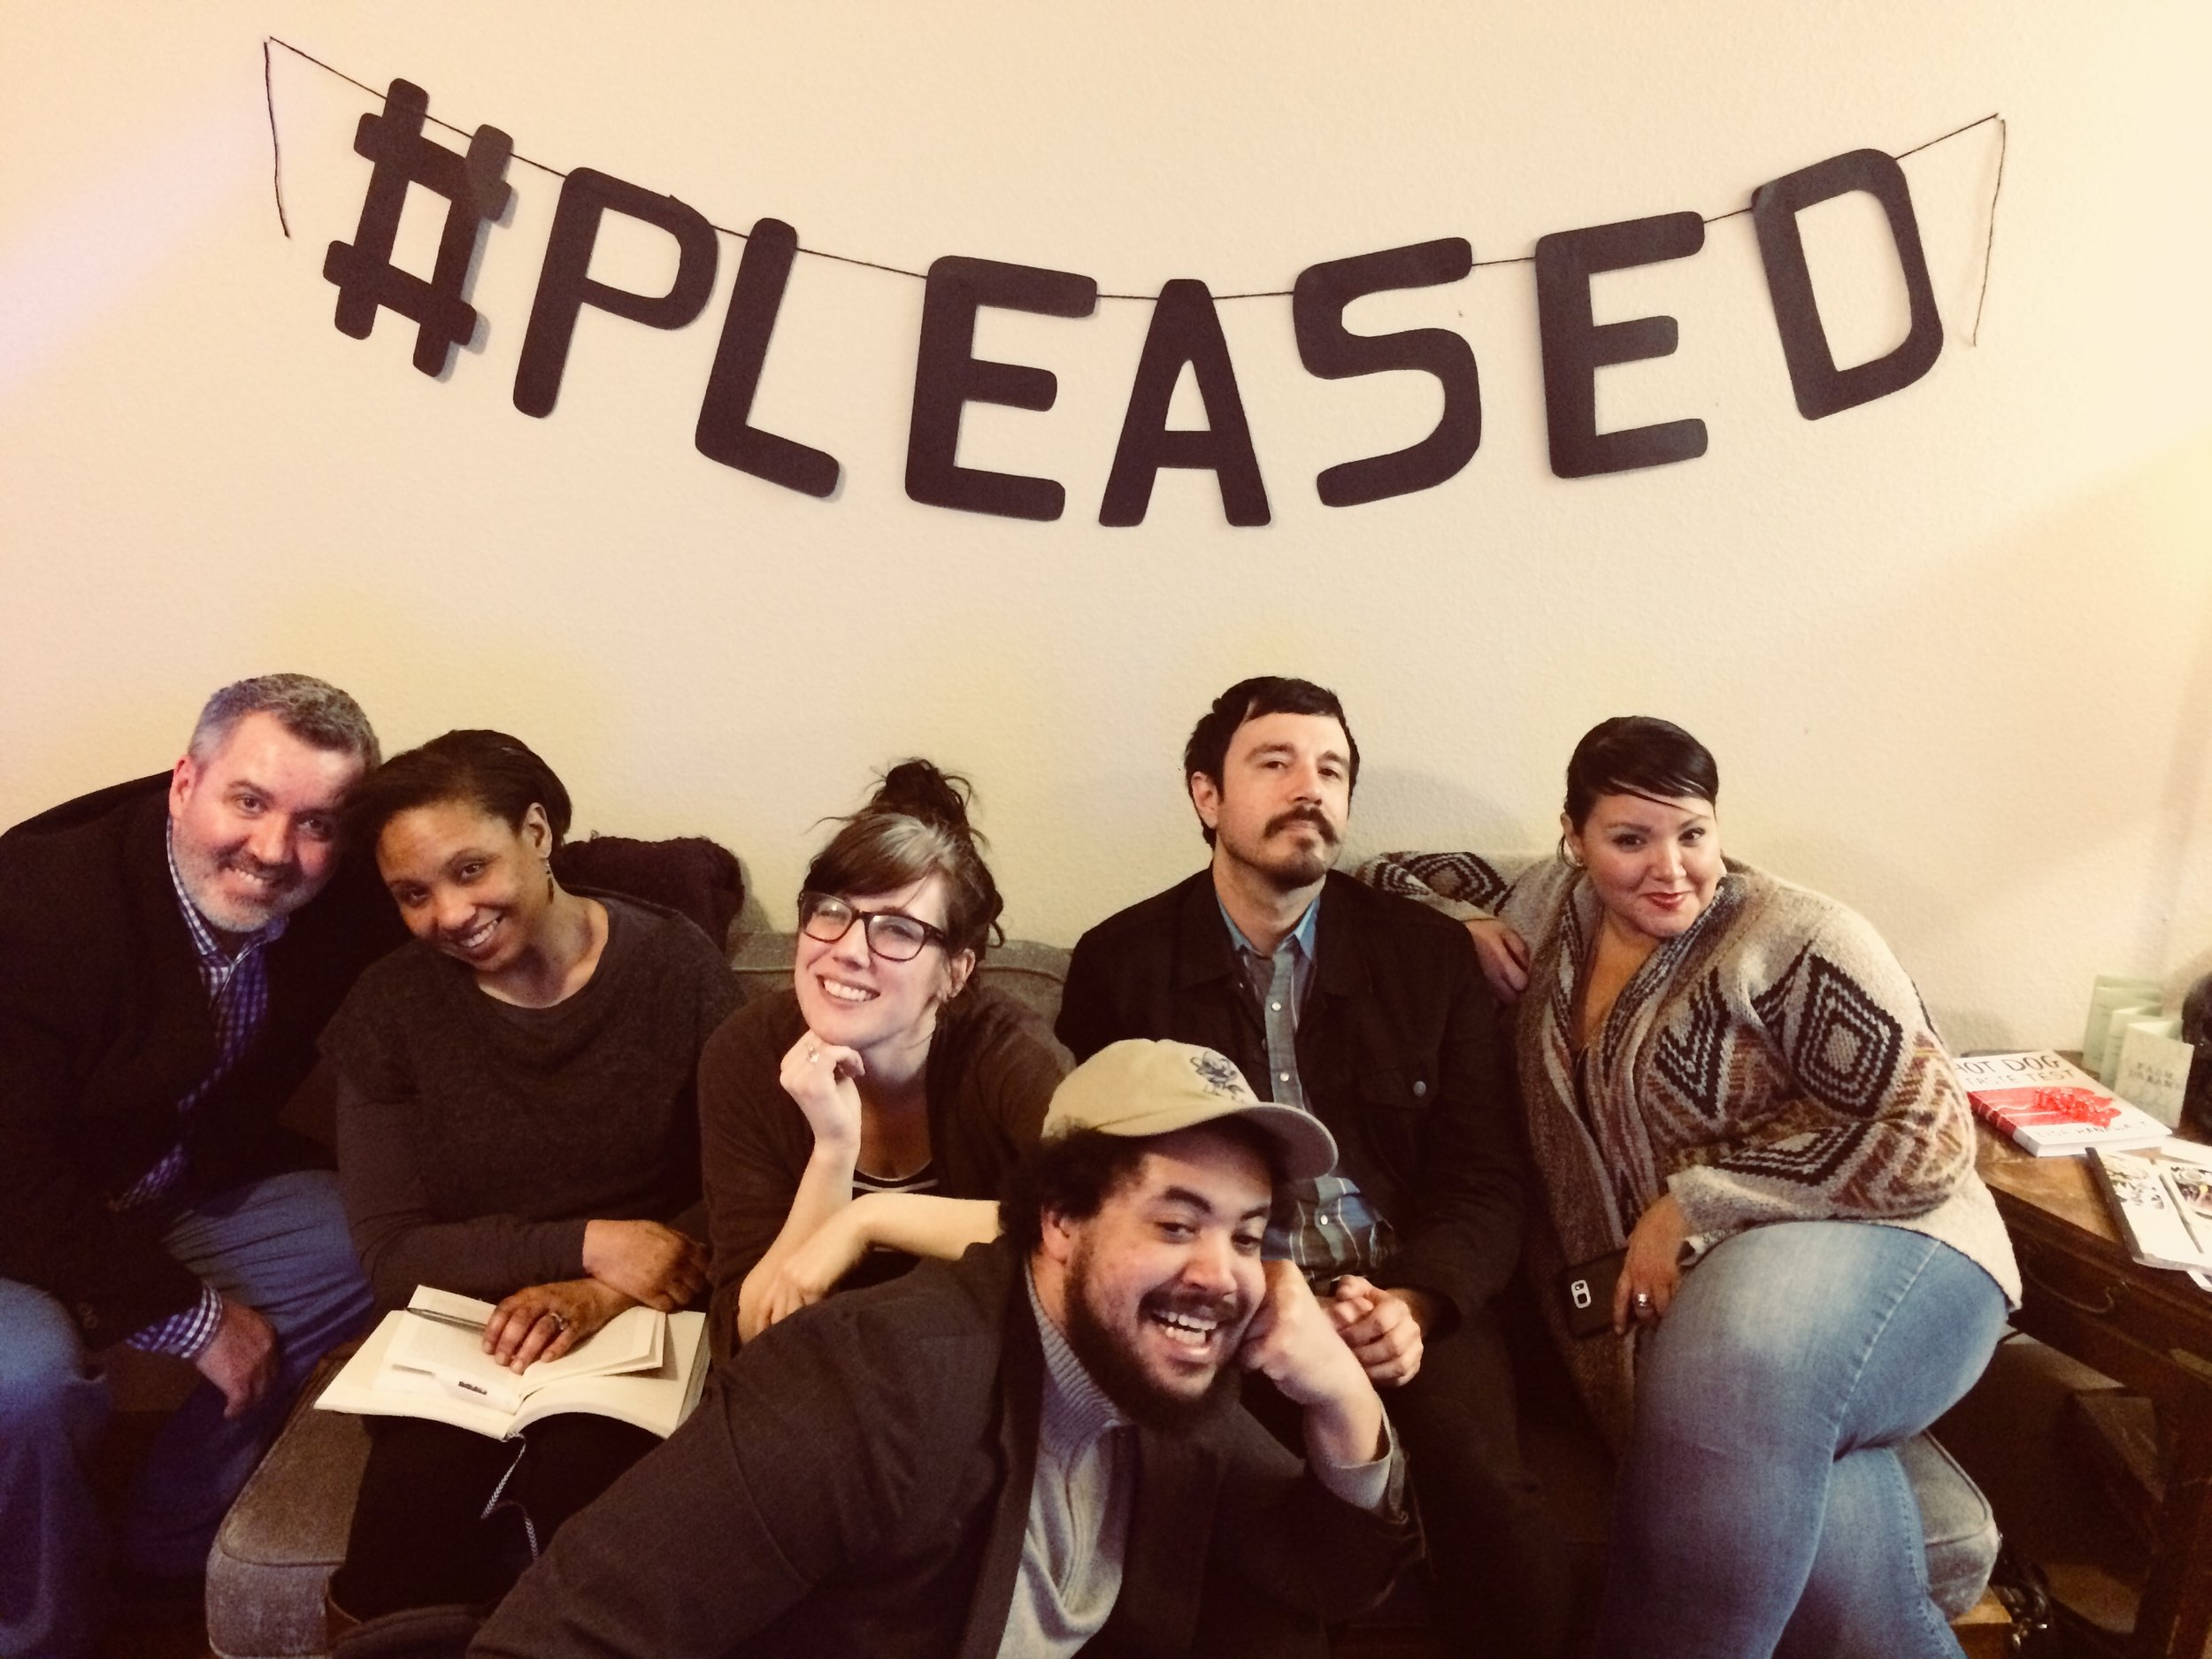 Some of DFW's finest radio-famous poets. (left to right: Paul Koniecki, Reverie Evolving, courtney marie, Sean Enfield, Mike Soto, and Ellie Gonzalez)